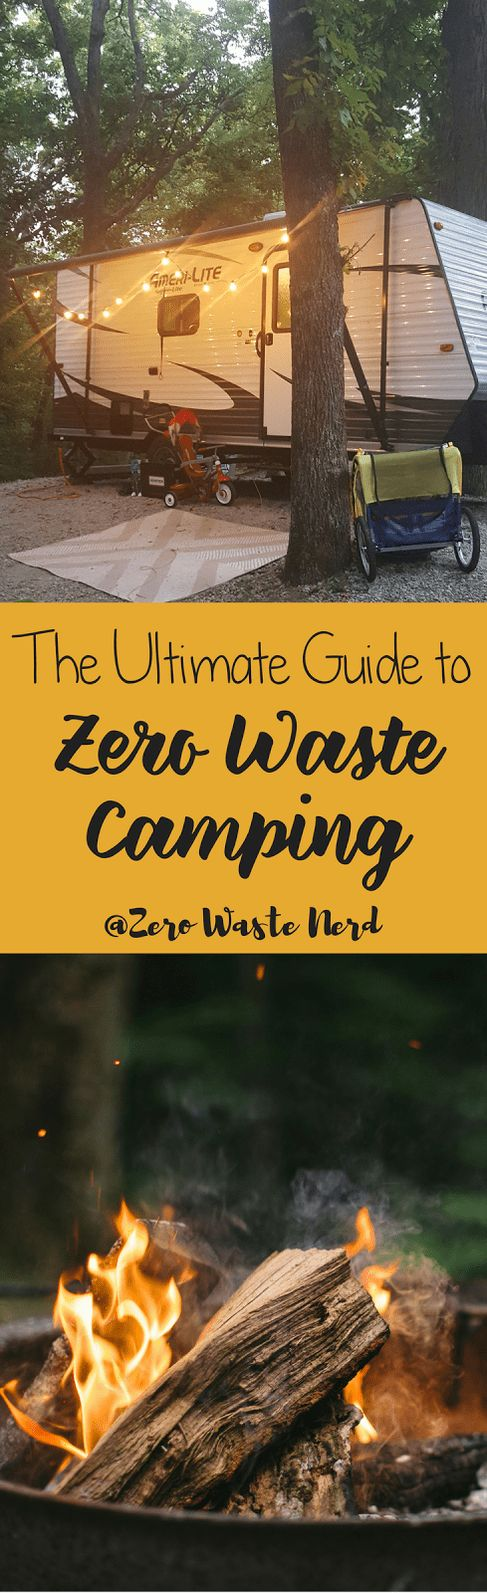 The Ultimate Guide to Zero Waste Camping – Kara Thomas